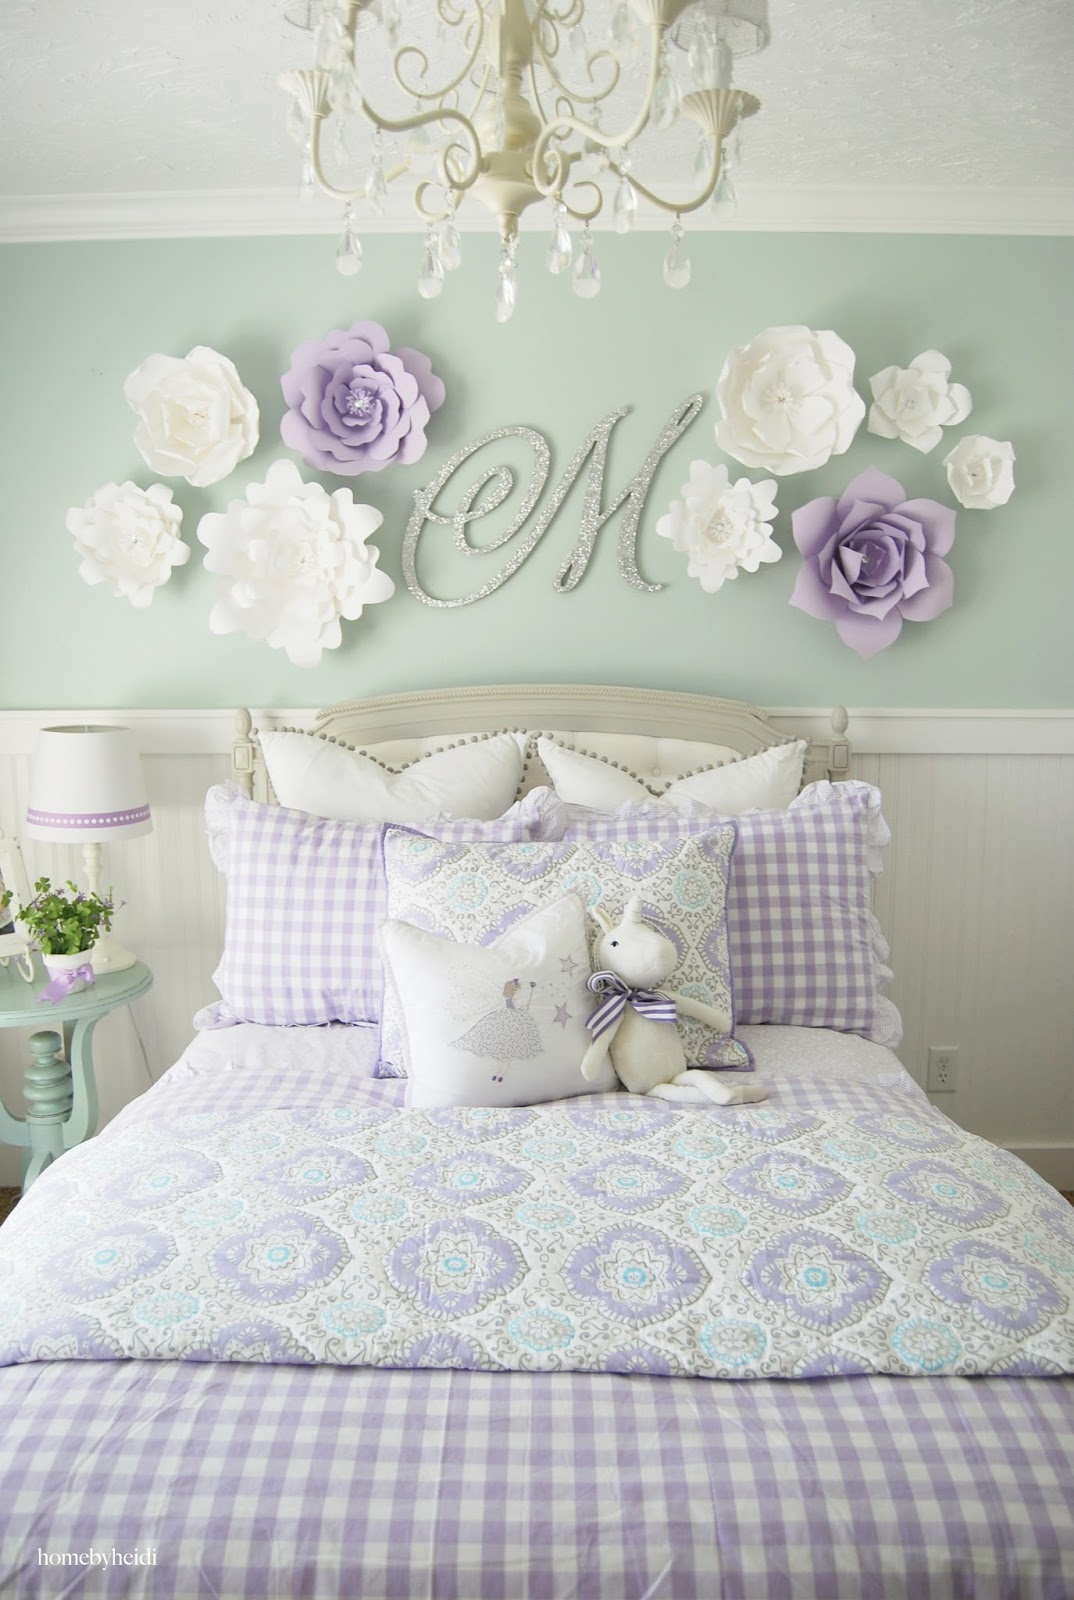 Home by heidi purple turquoise little girls room - How to decorate a girl room ...